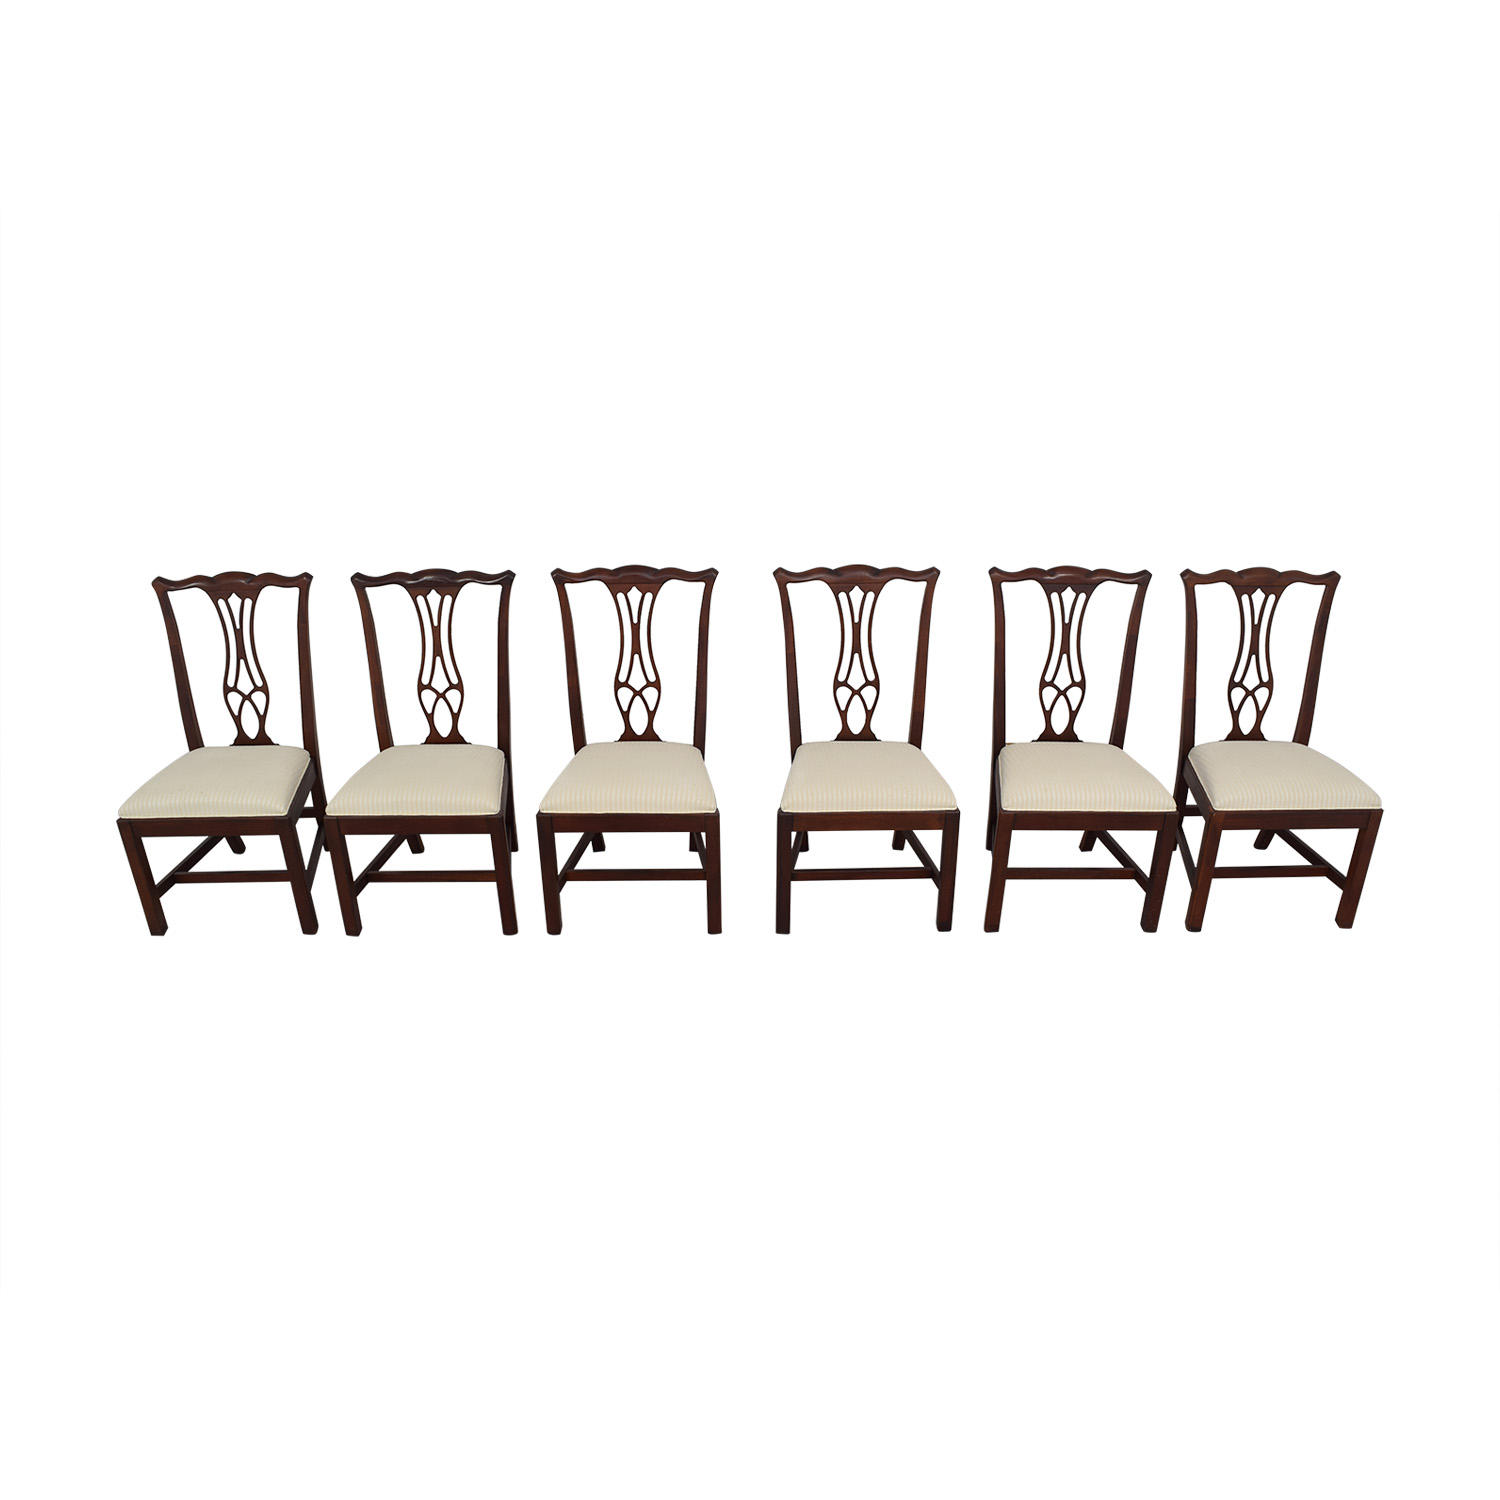 Drexel Heritage Drexel Heritage Upholstered Dining Chairs Dining Chairs